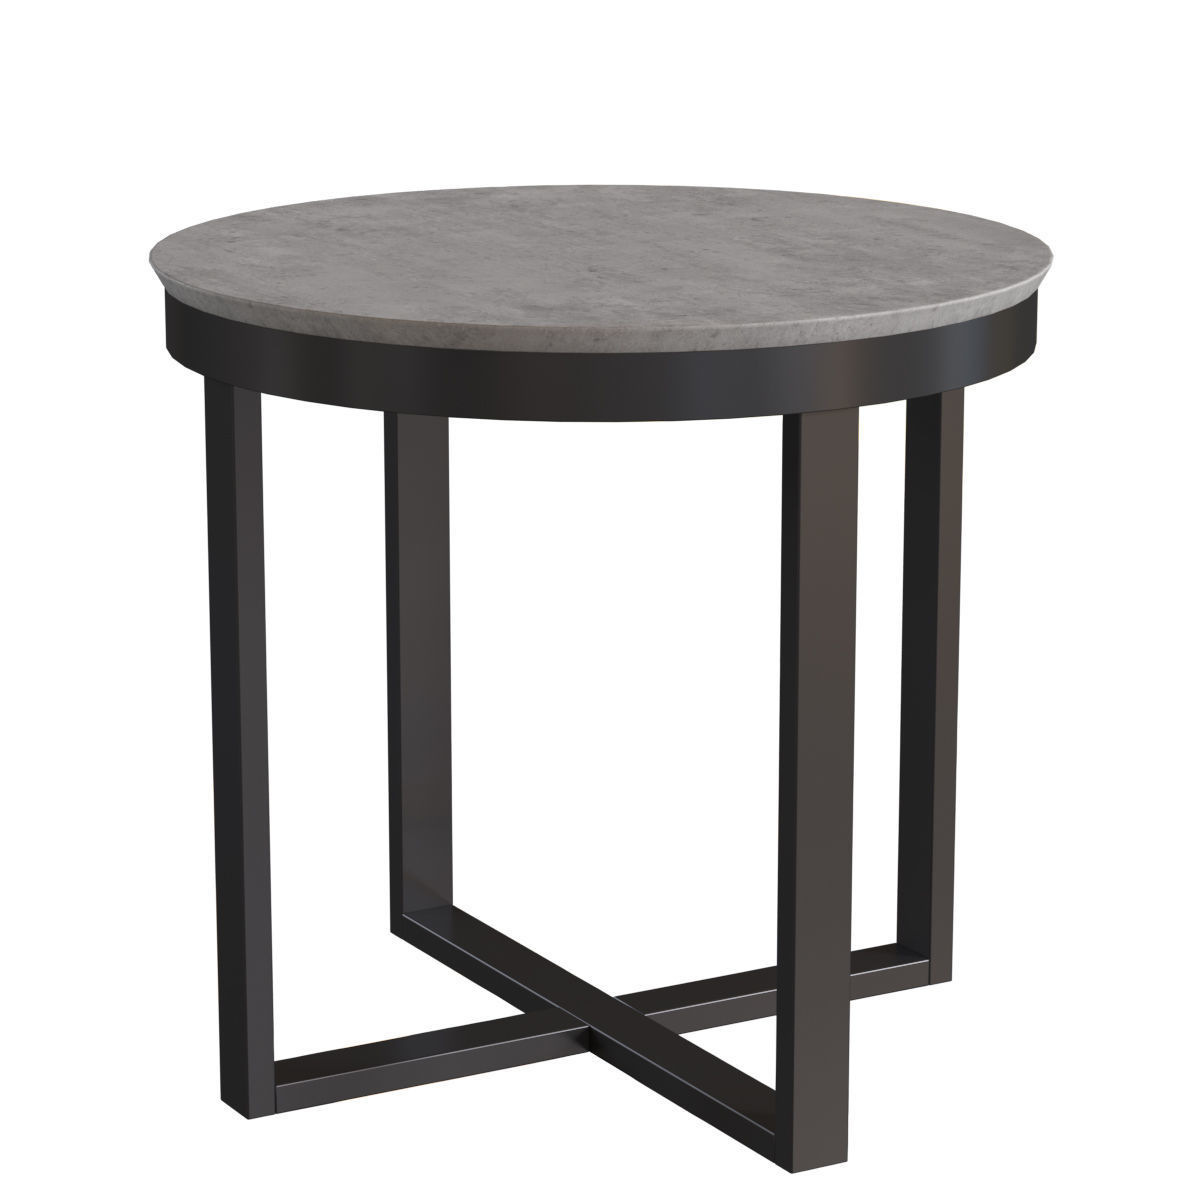 Lehome T299 Bedside Table